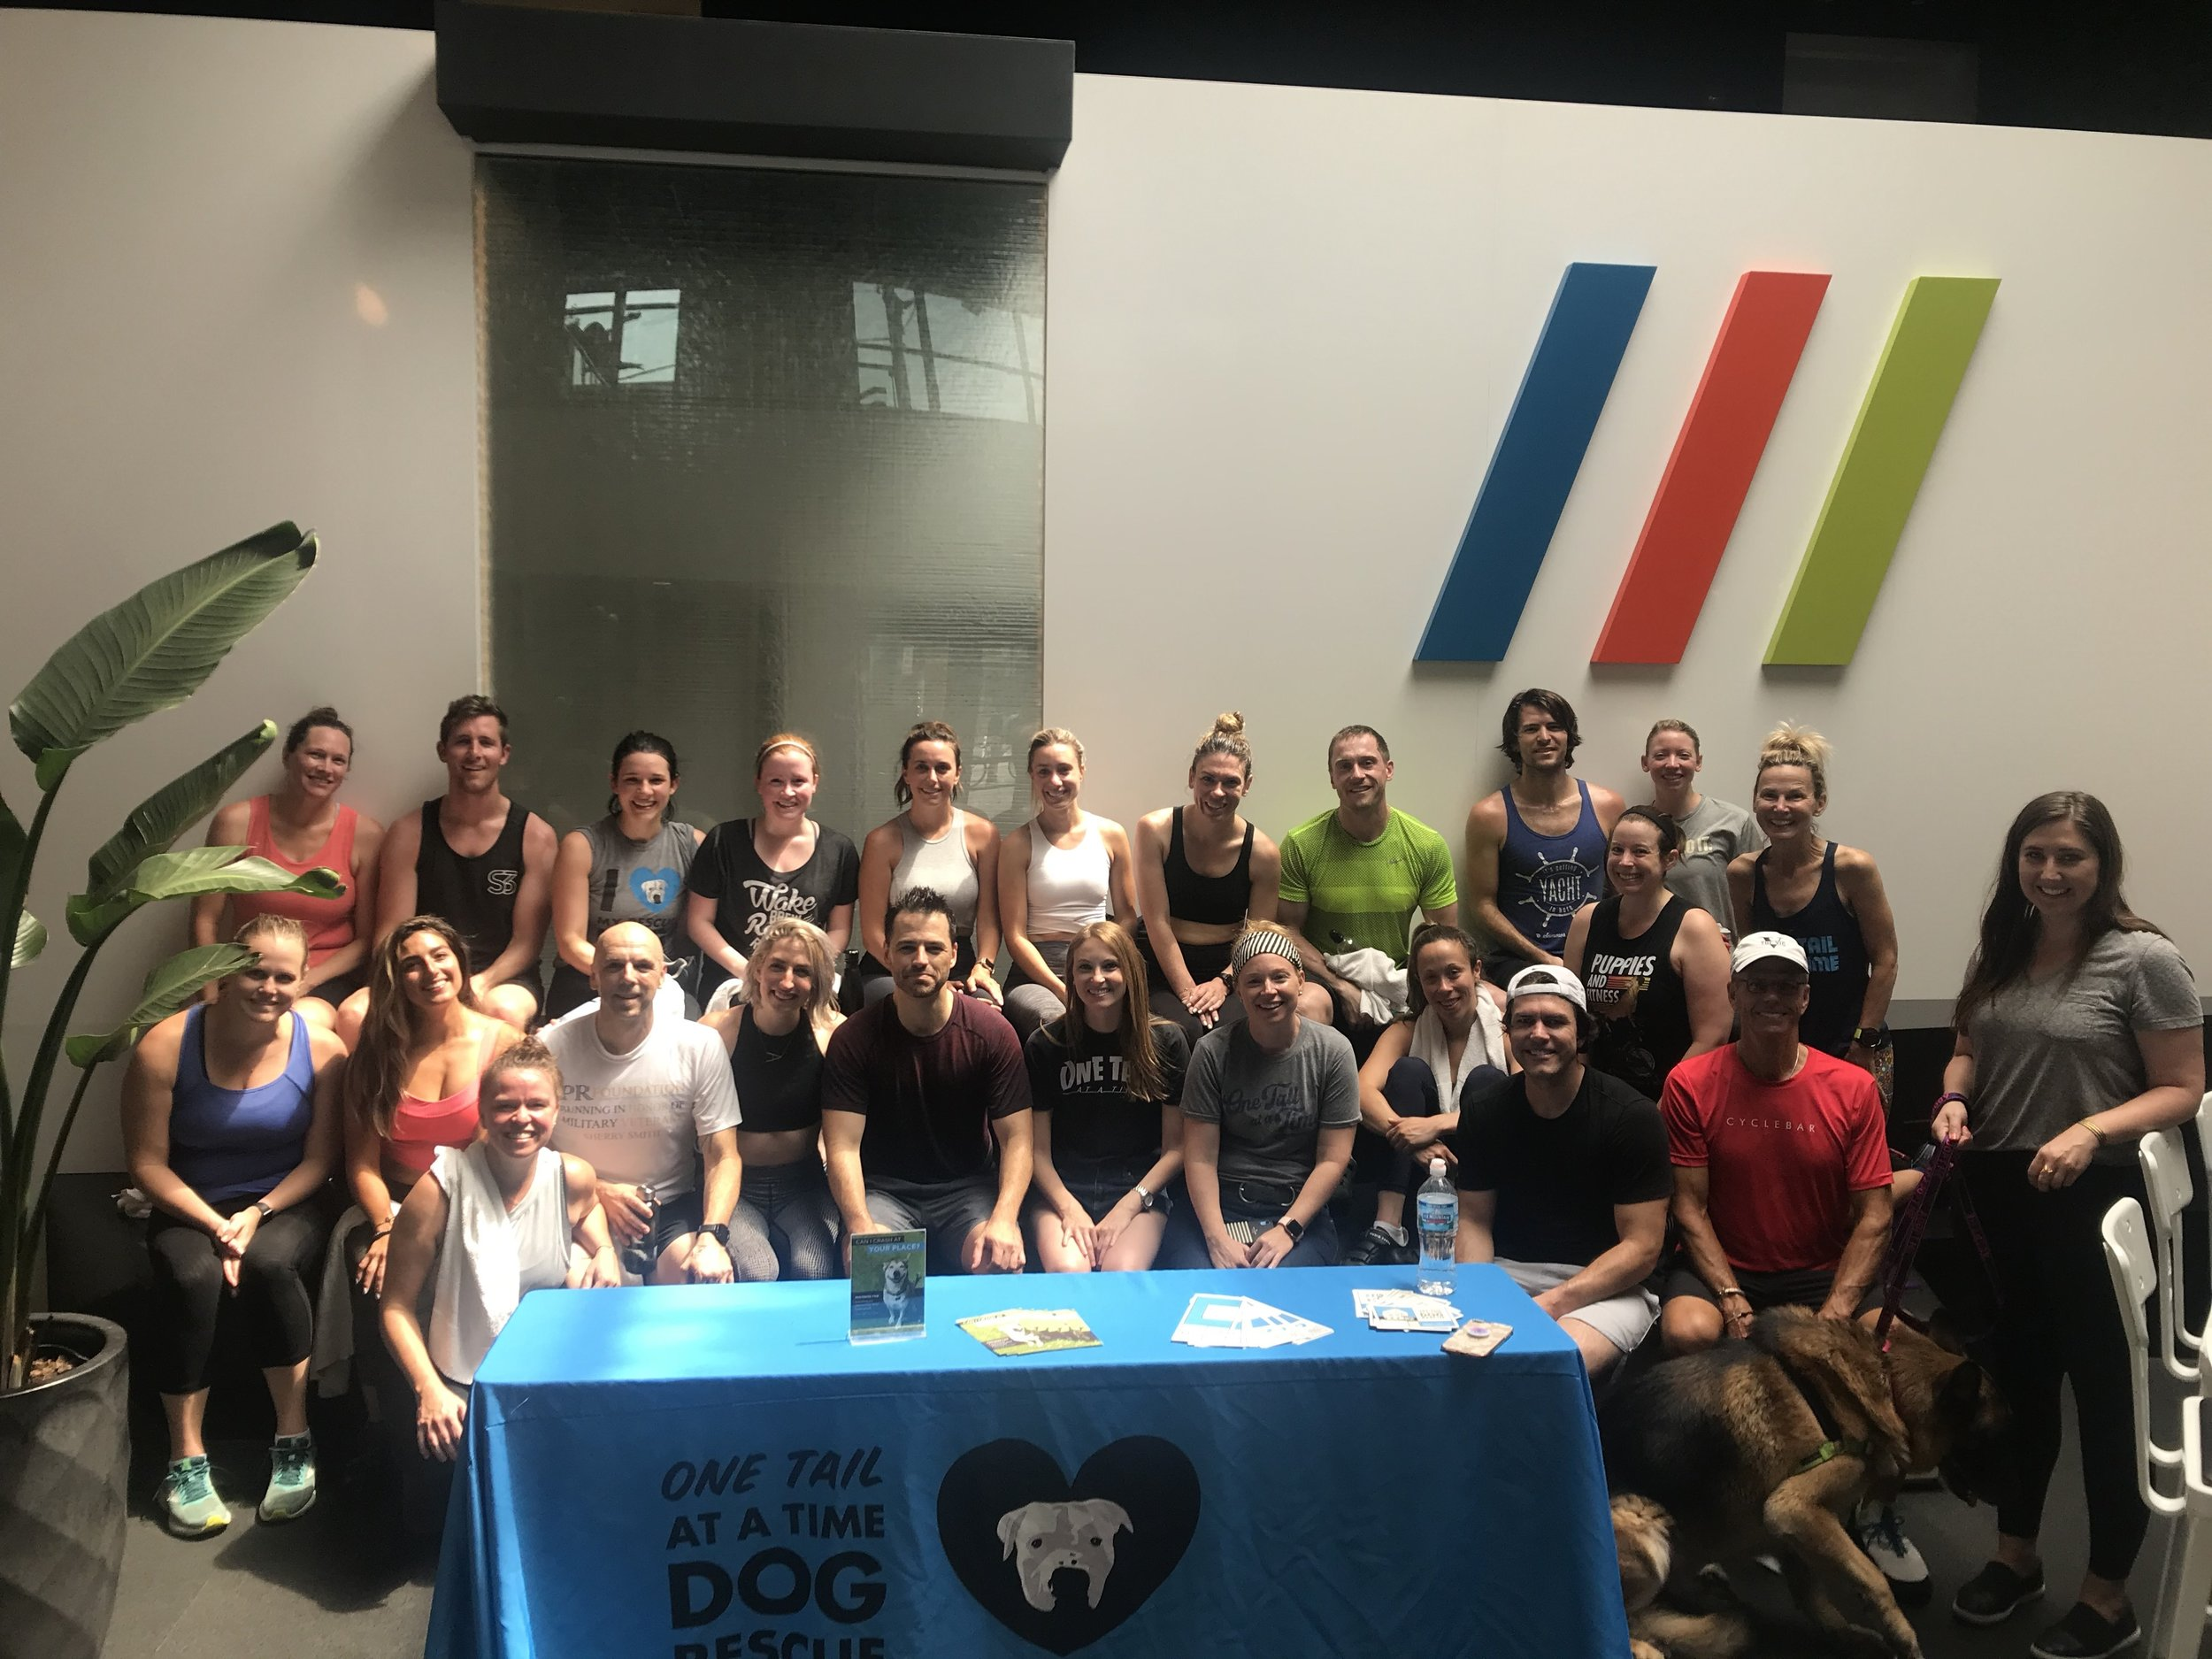 2019 2nd Annual PR Foundation Puppy Pedal at Studio Three Chicago benefitting One Tail at a Time No Kill Shelter Thank you to all the riders that made this event such a success.